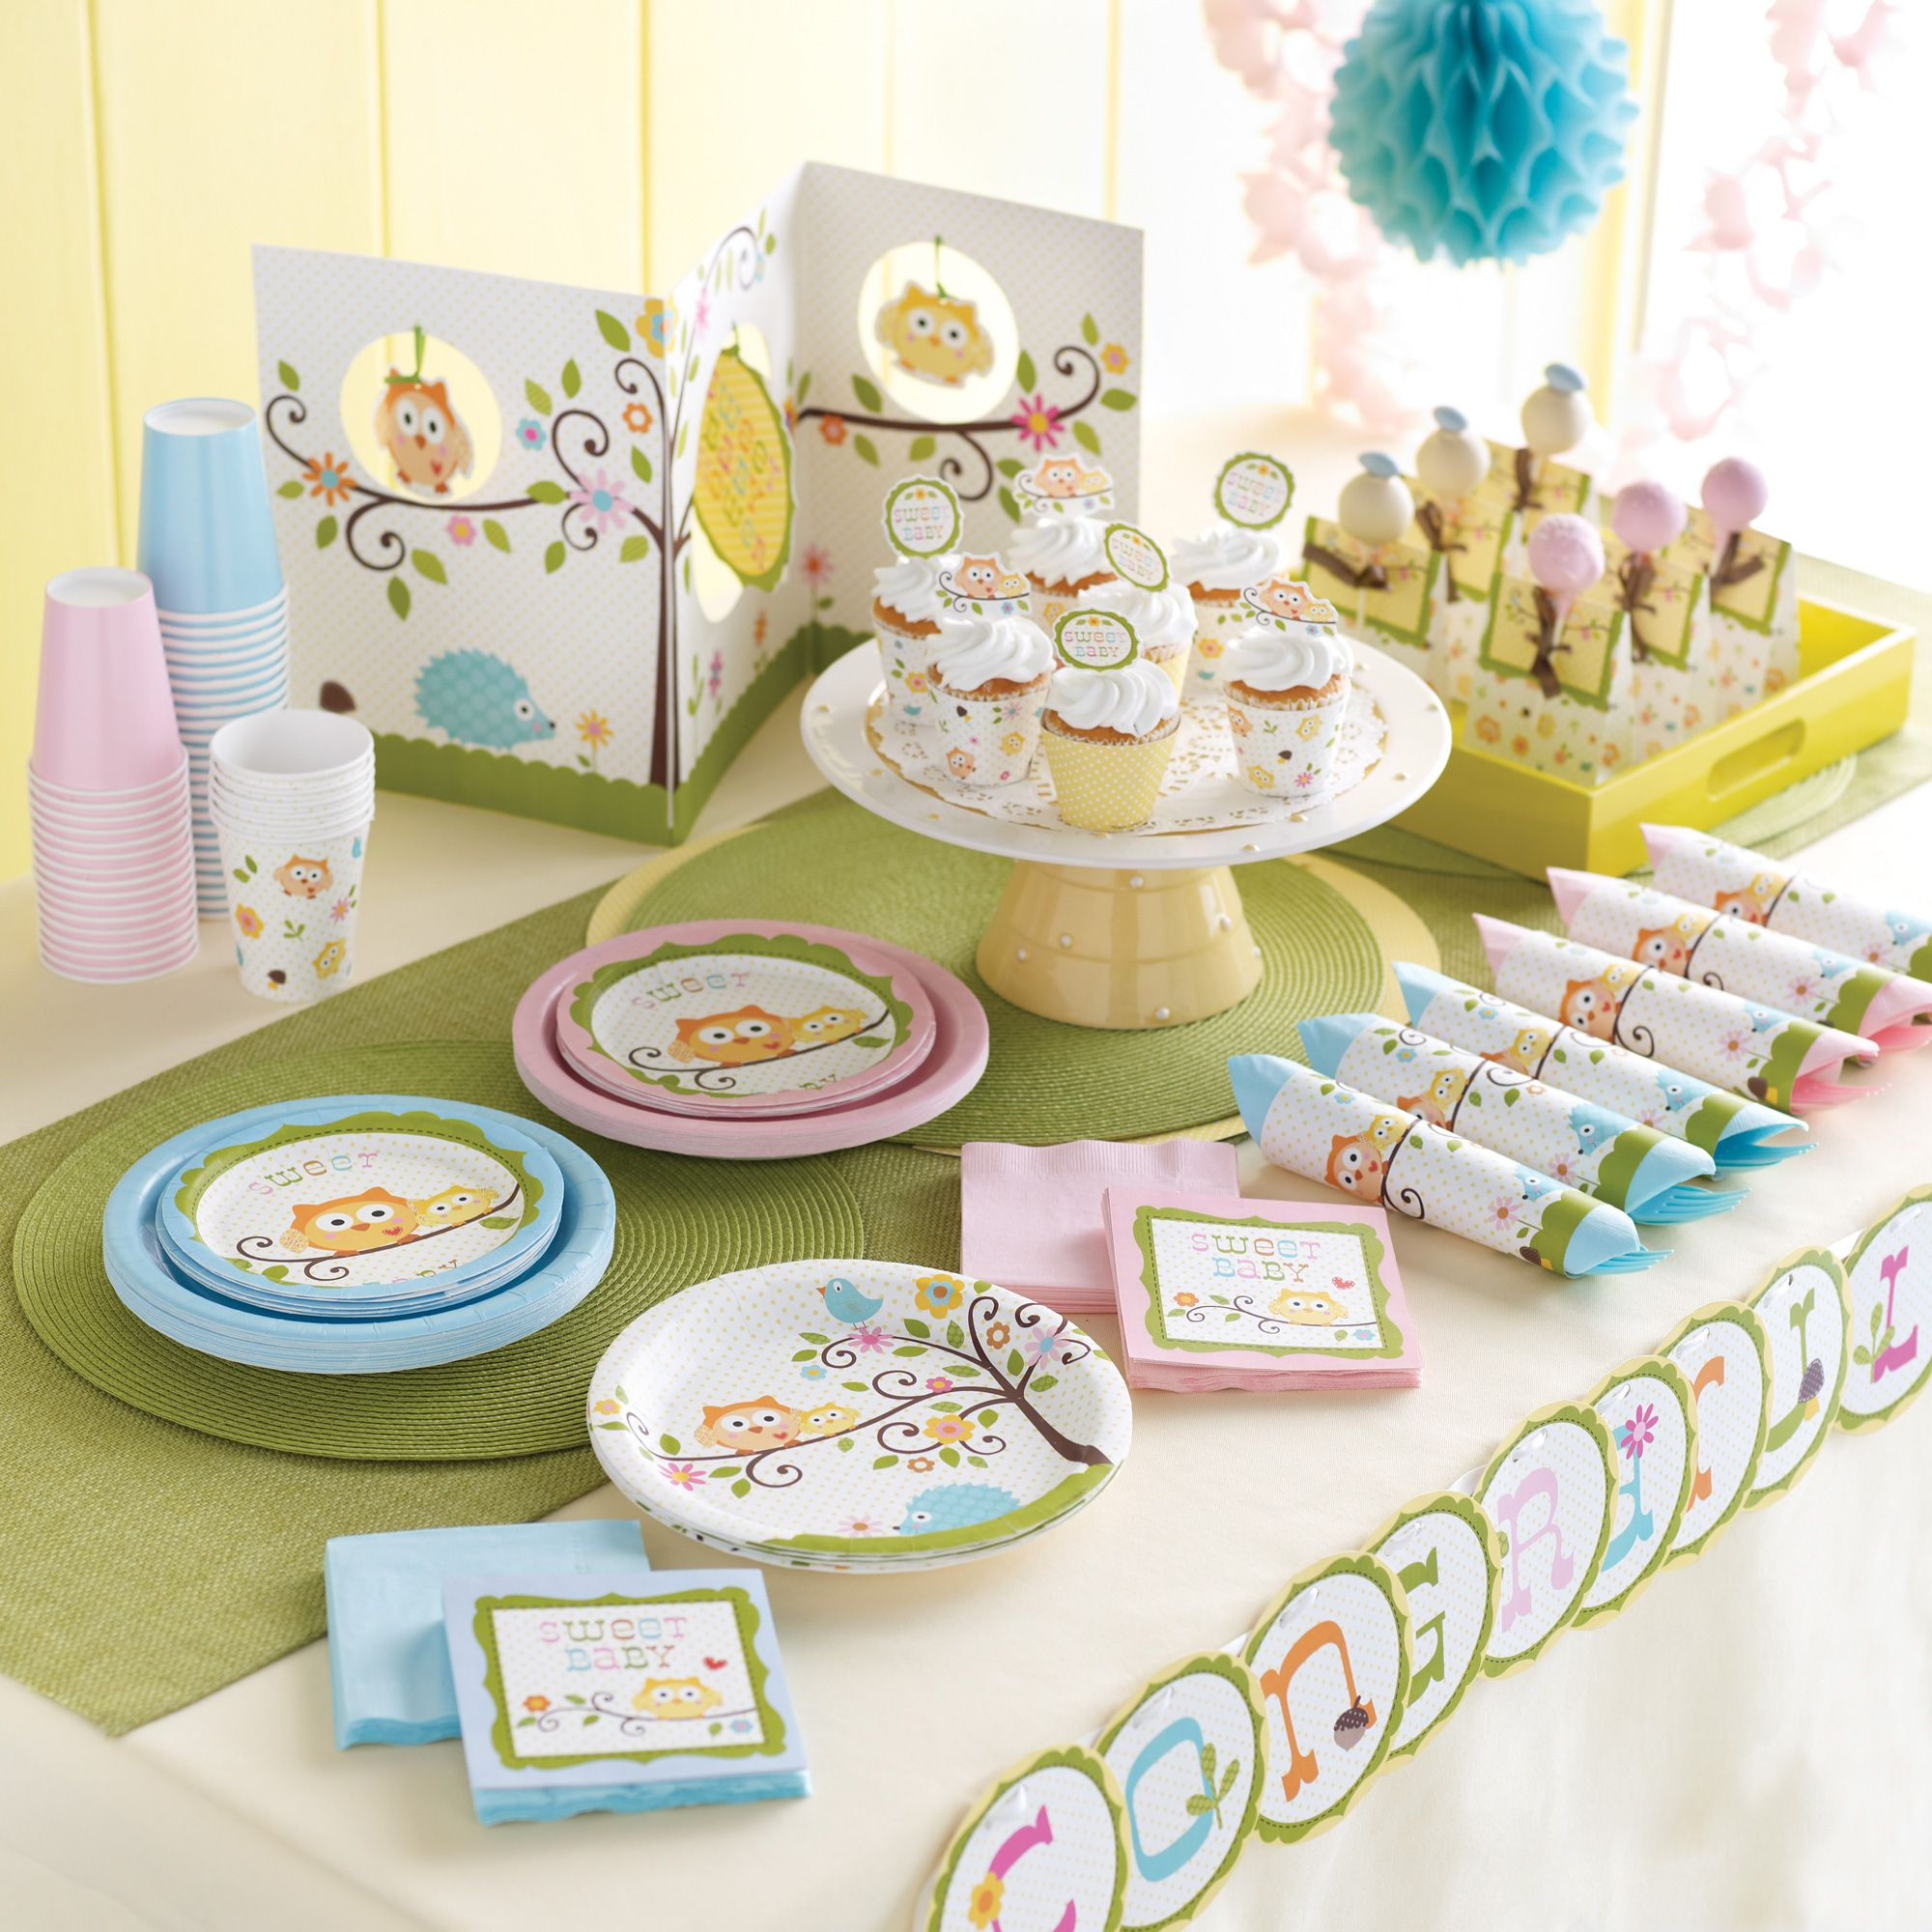 Owl themed baby shower owl themed baby shower kit 40 00 host a whooo has the cutest baby shower decorations with our happi tree baby shower theme featuring the sweetest owl bird and porcupine characters negle Choice Image